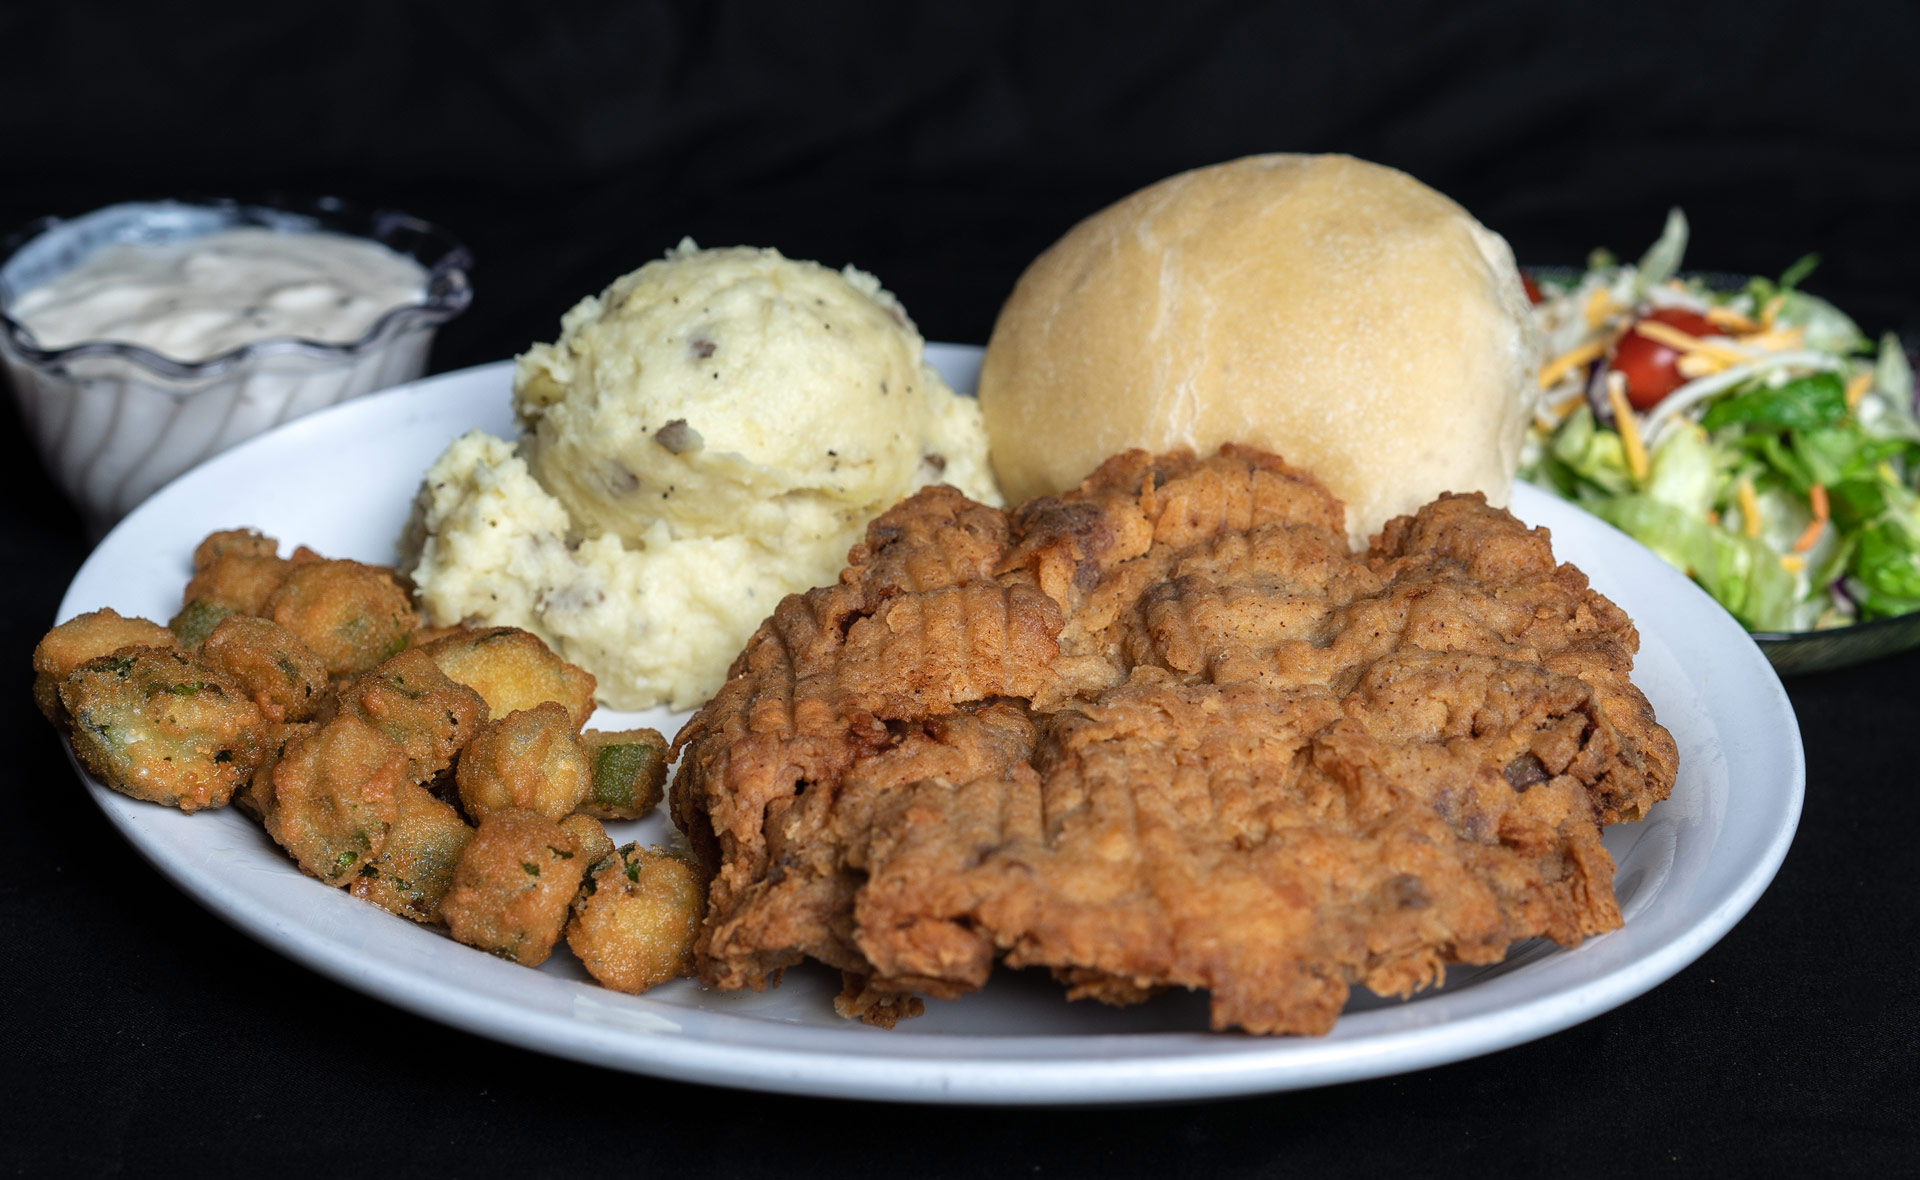 Chicken Fried Steak 8 oz. beef cutlet deep fried to a golden brown. Served with country or brown gravy on the side with baked or mashed potatoes, fried okra, salad bar and an in-house prepared yeast roll. 15.00